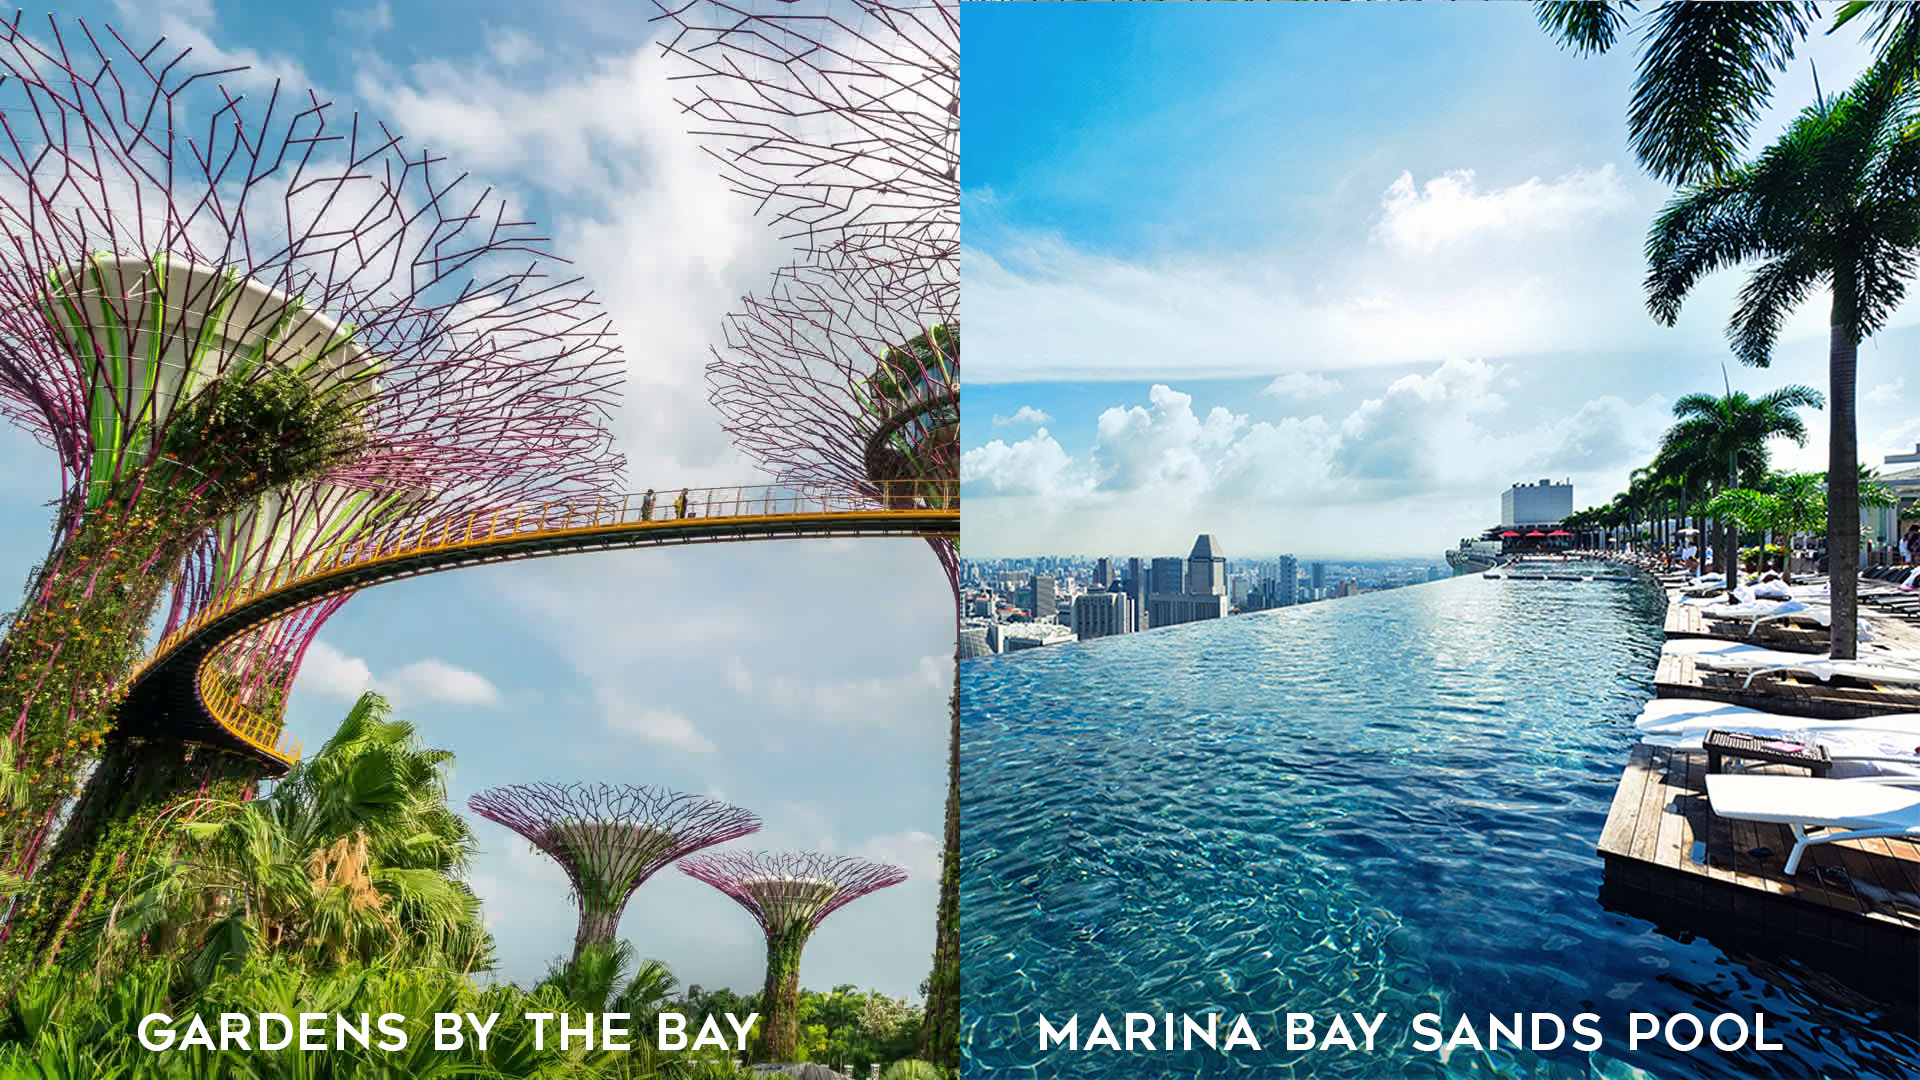 Singapore Gardens by the Bay and Marina Bay Sands Pool